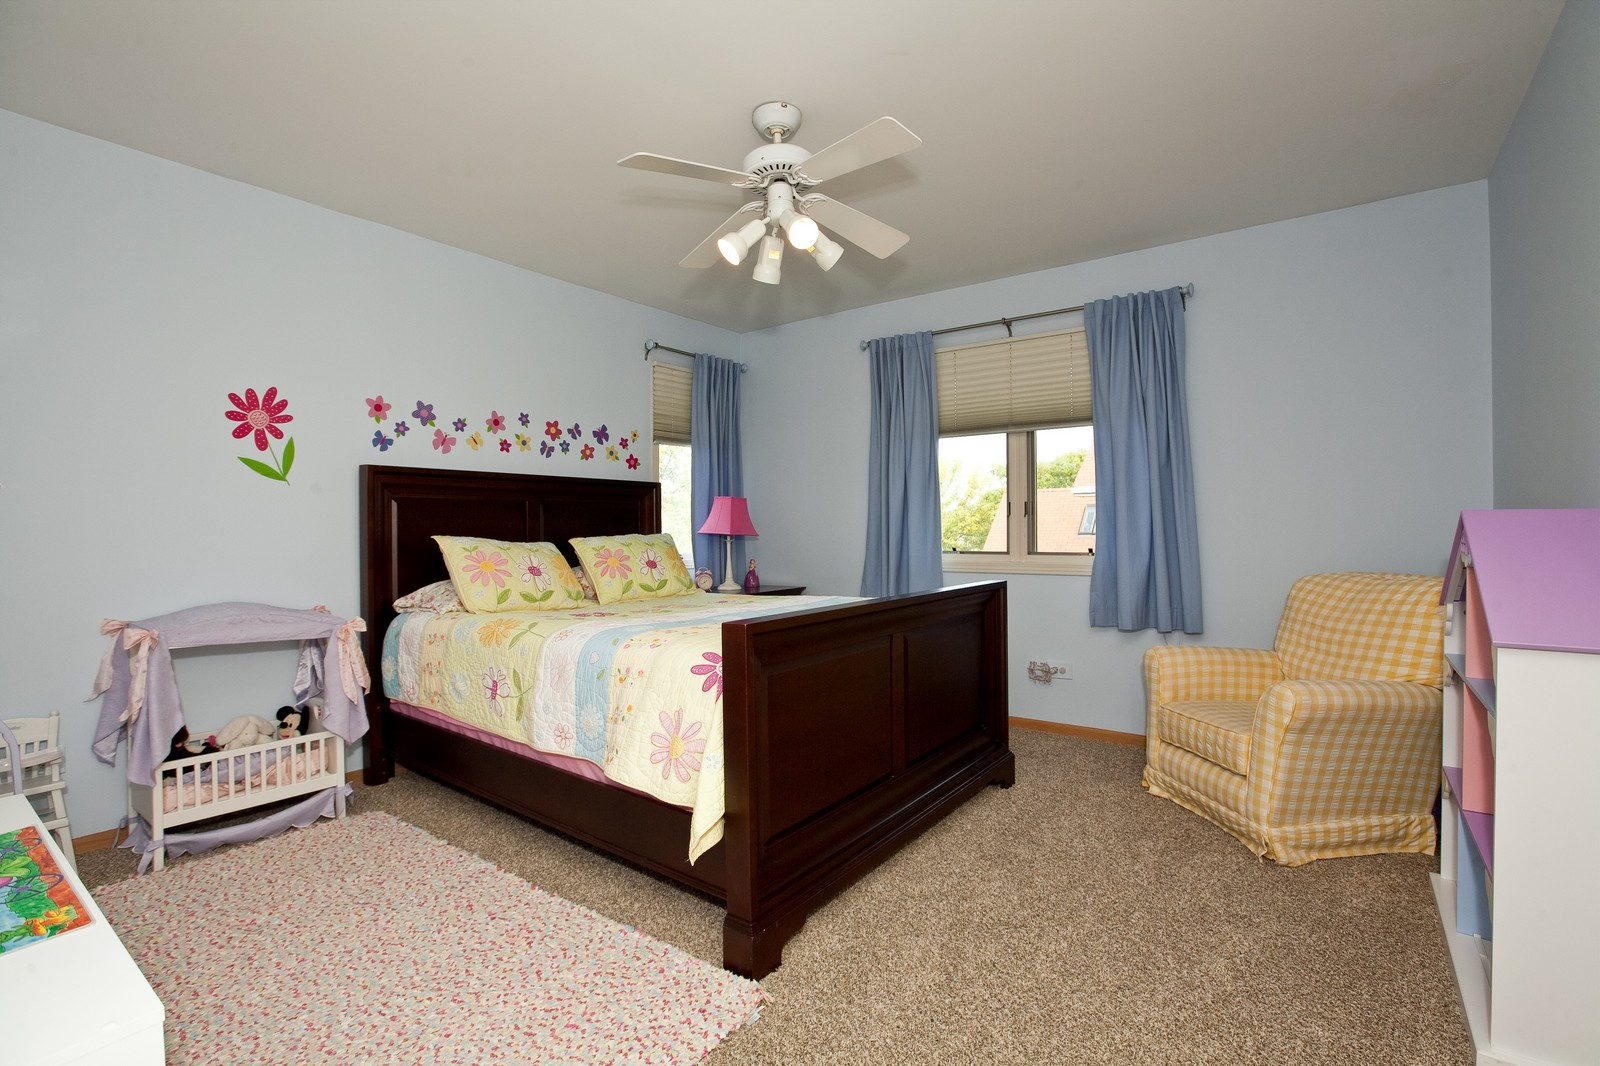 Real Estate Photography - 1031 W. 119th St, Lemont, IL, 60439 - 4th Bedroom